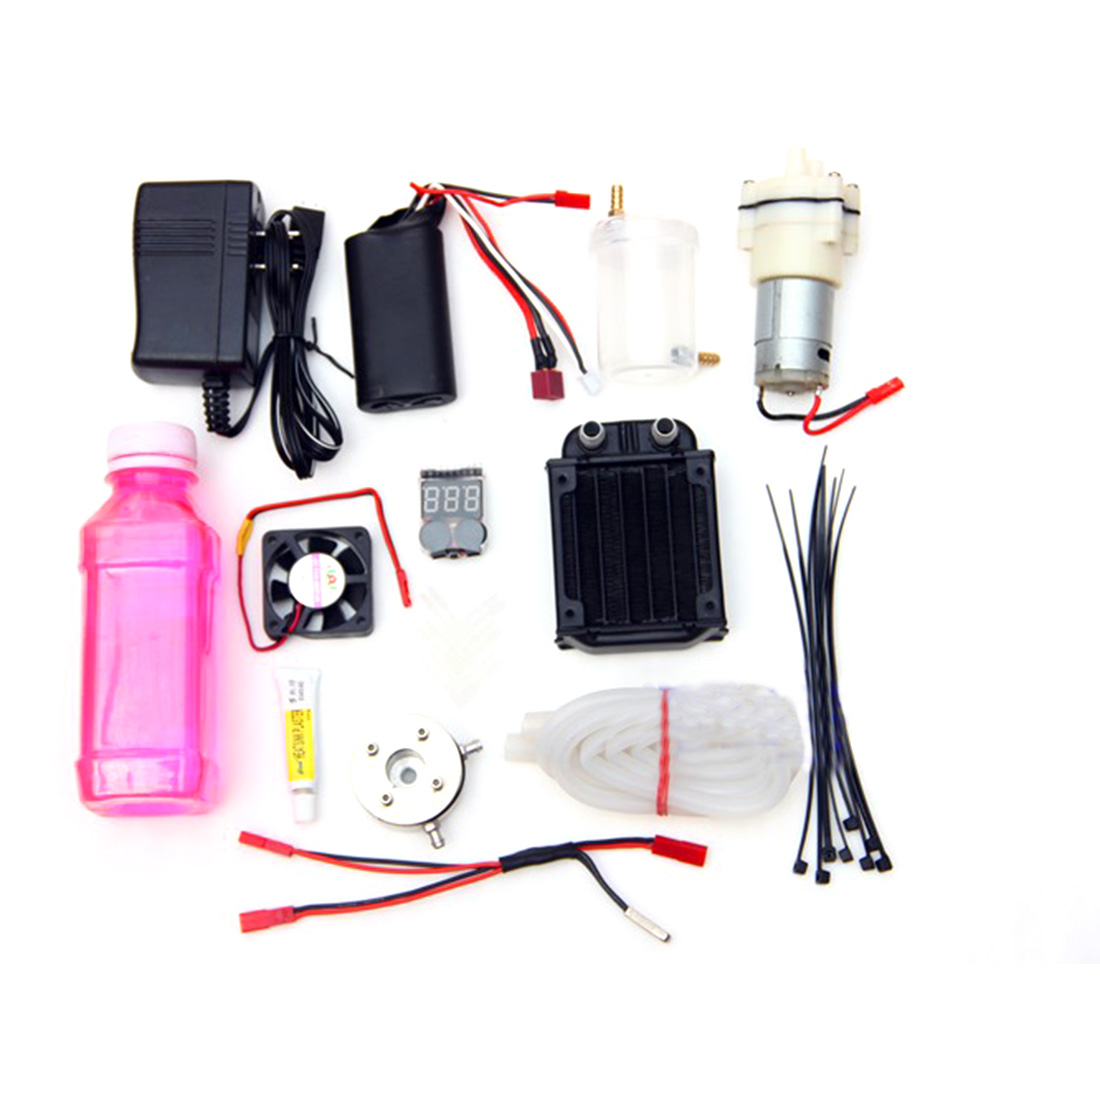 Level 18 Methanol Engine Gas Powered Model Car Water-cooled Cooling Accessories Kit (Only Water Cooling Accessories, No engine)